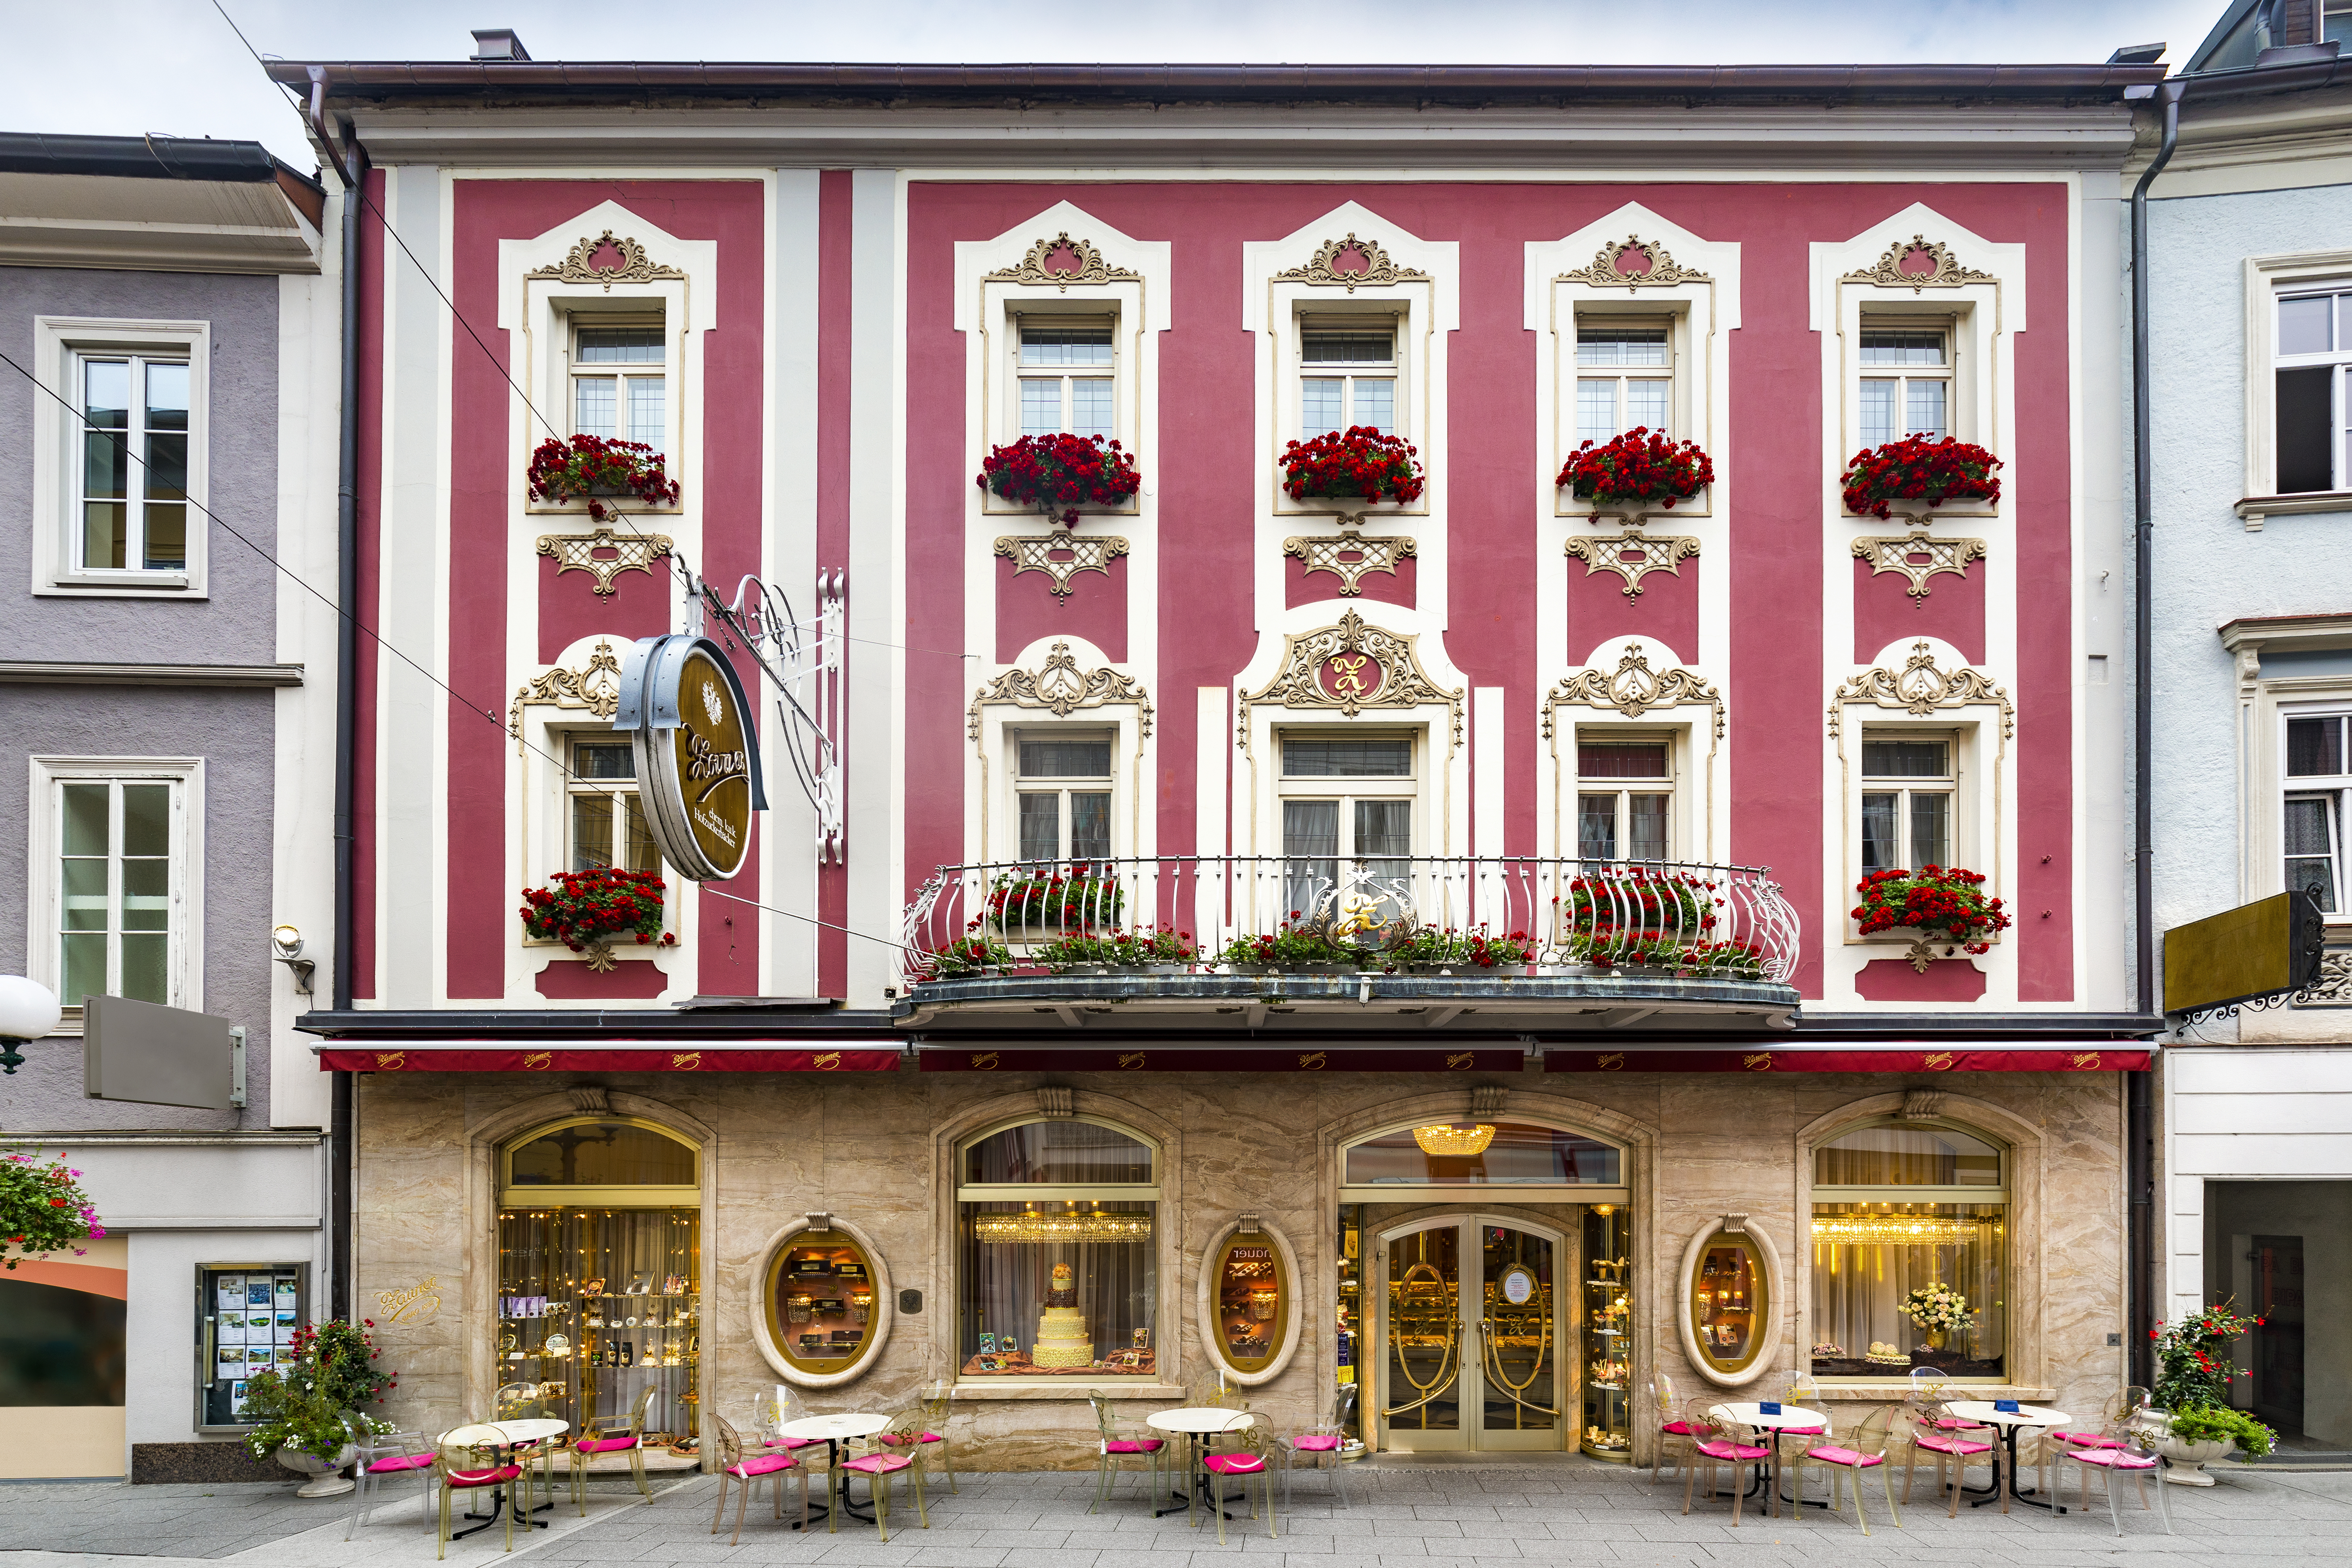 The Konditorei Zauner Bakery and Pastry shop, the parent company in Pfarrgasse in Bad Ischl (per Wikimedia)